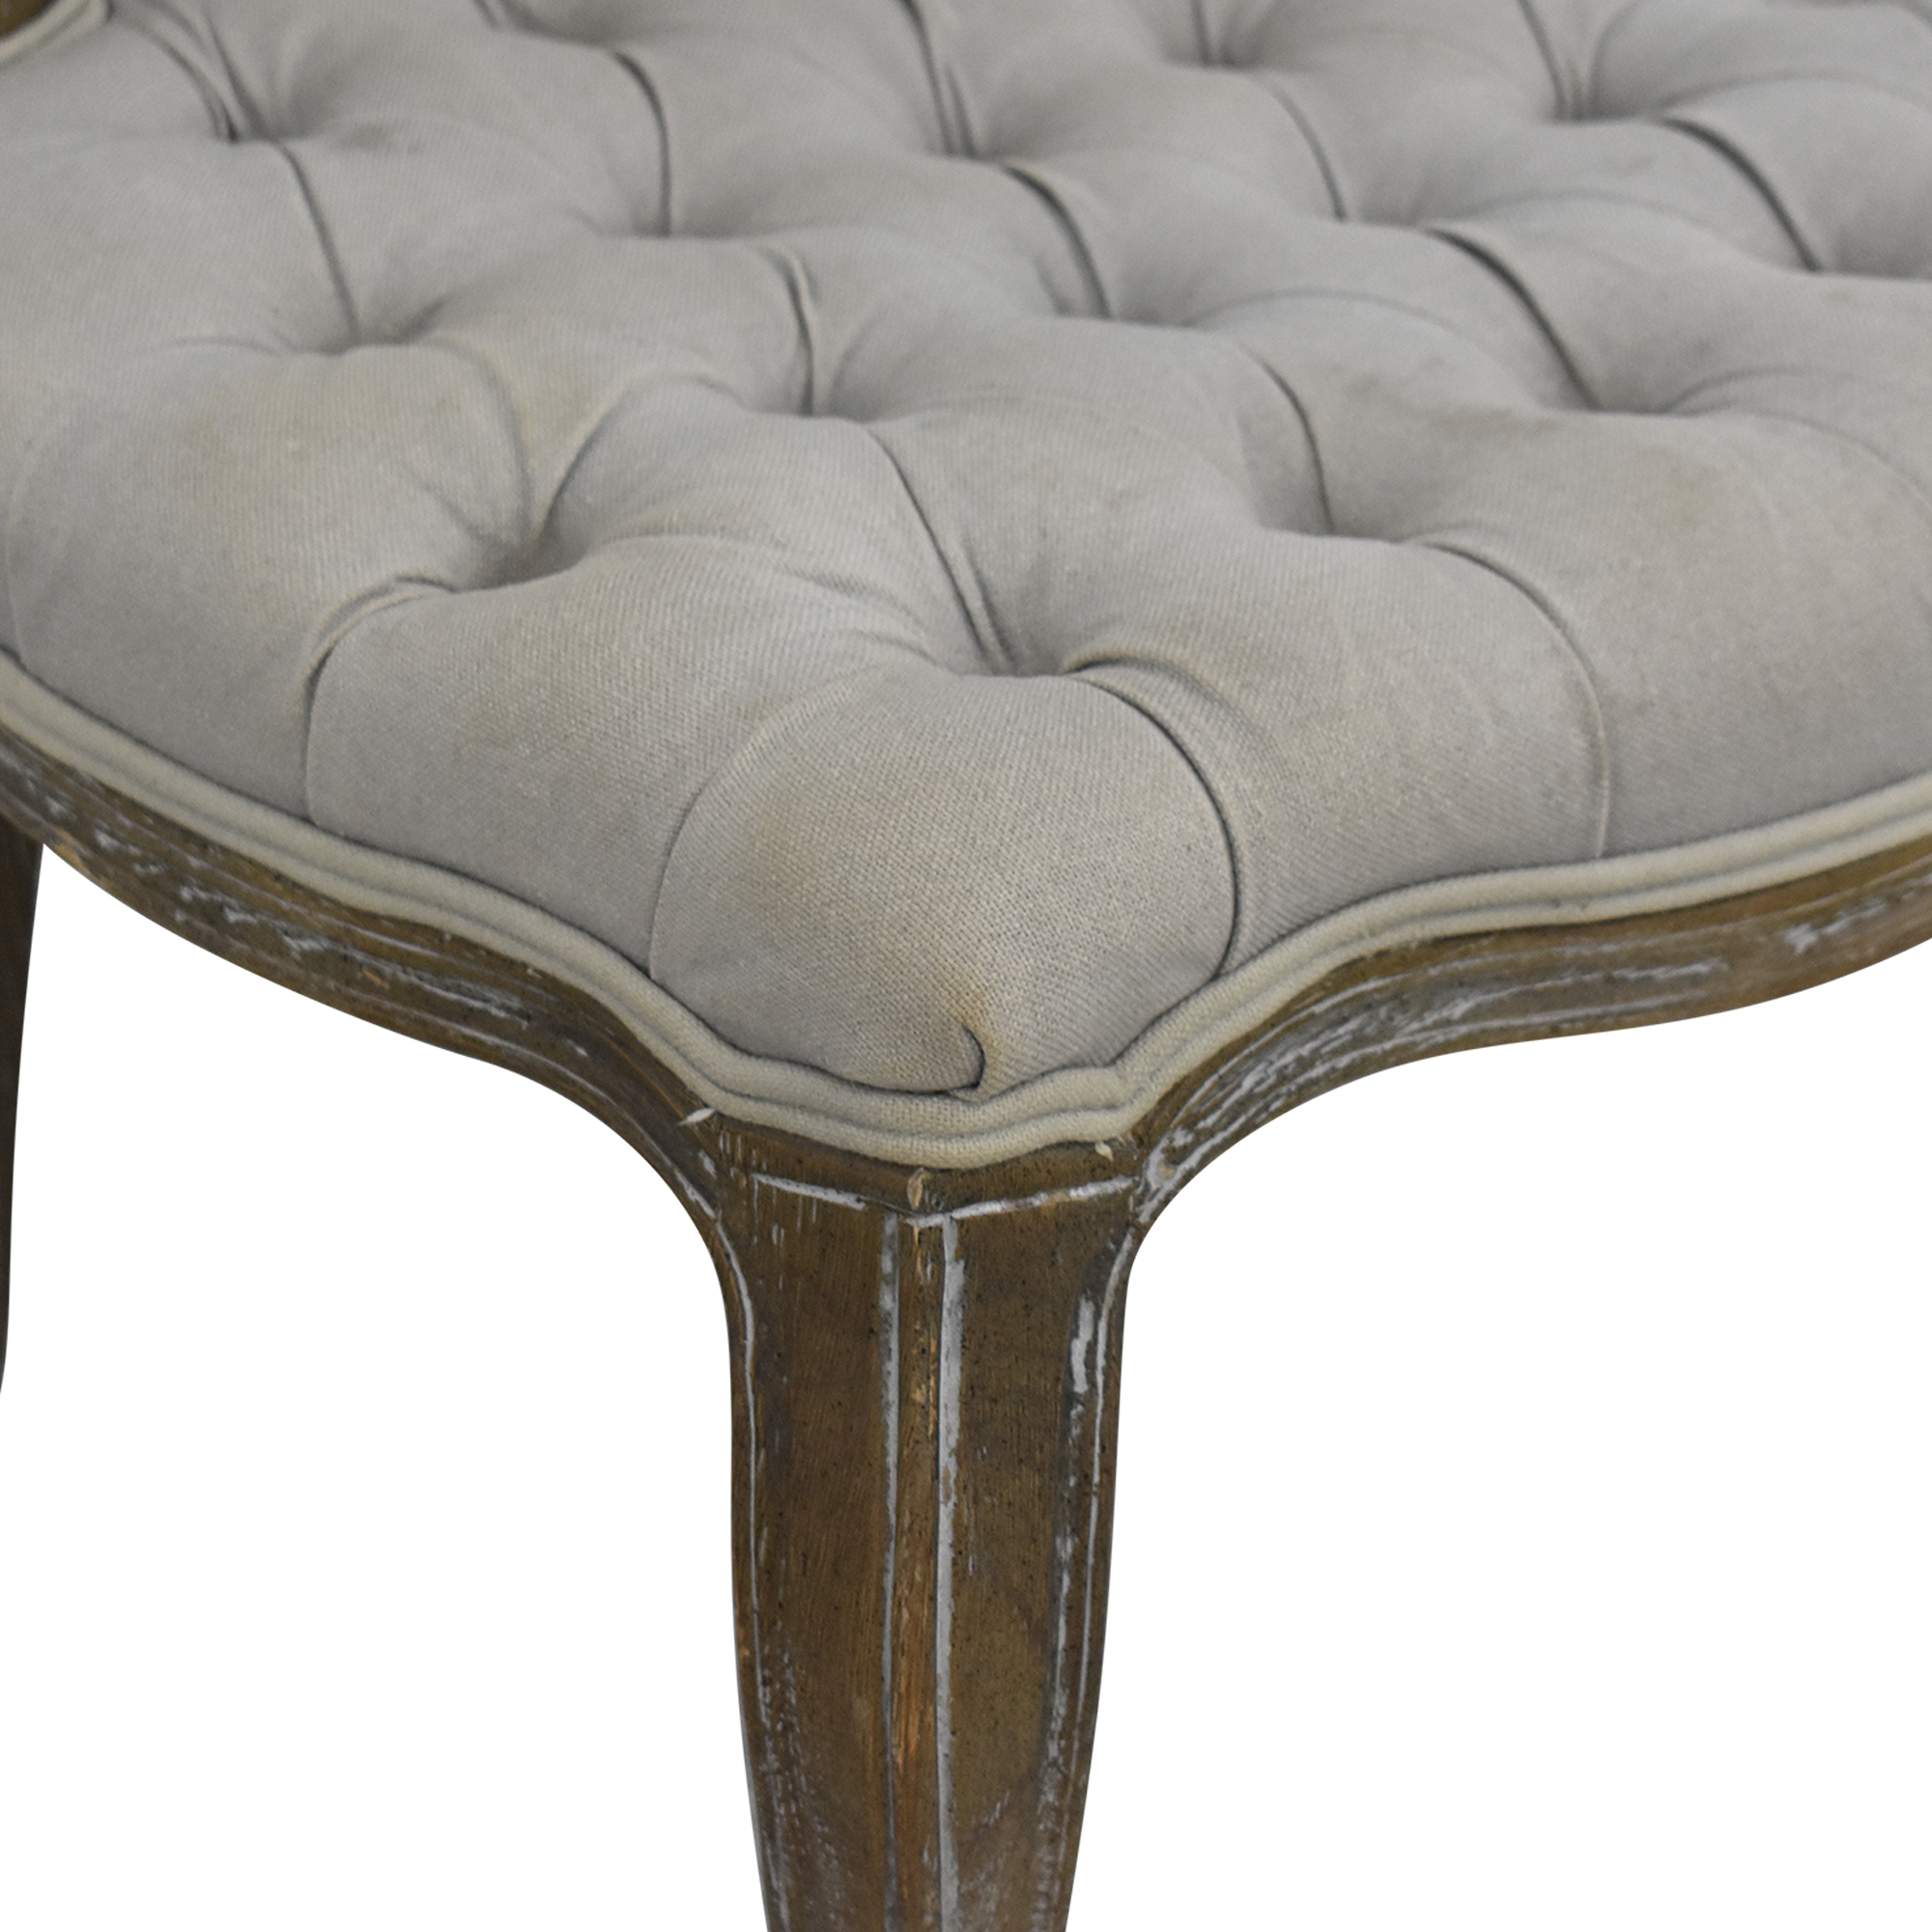 Arhaus Arhaus Country French Tufted Dining Chairs ma